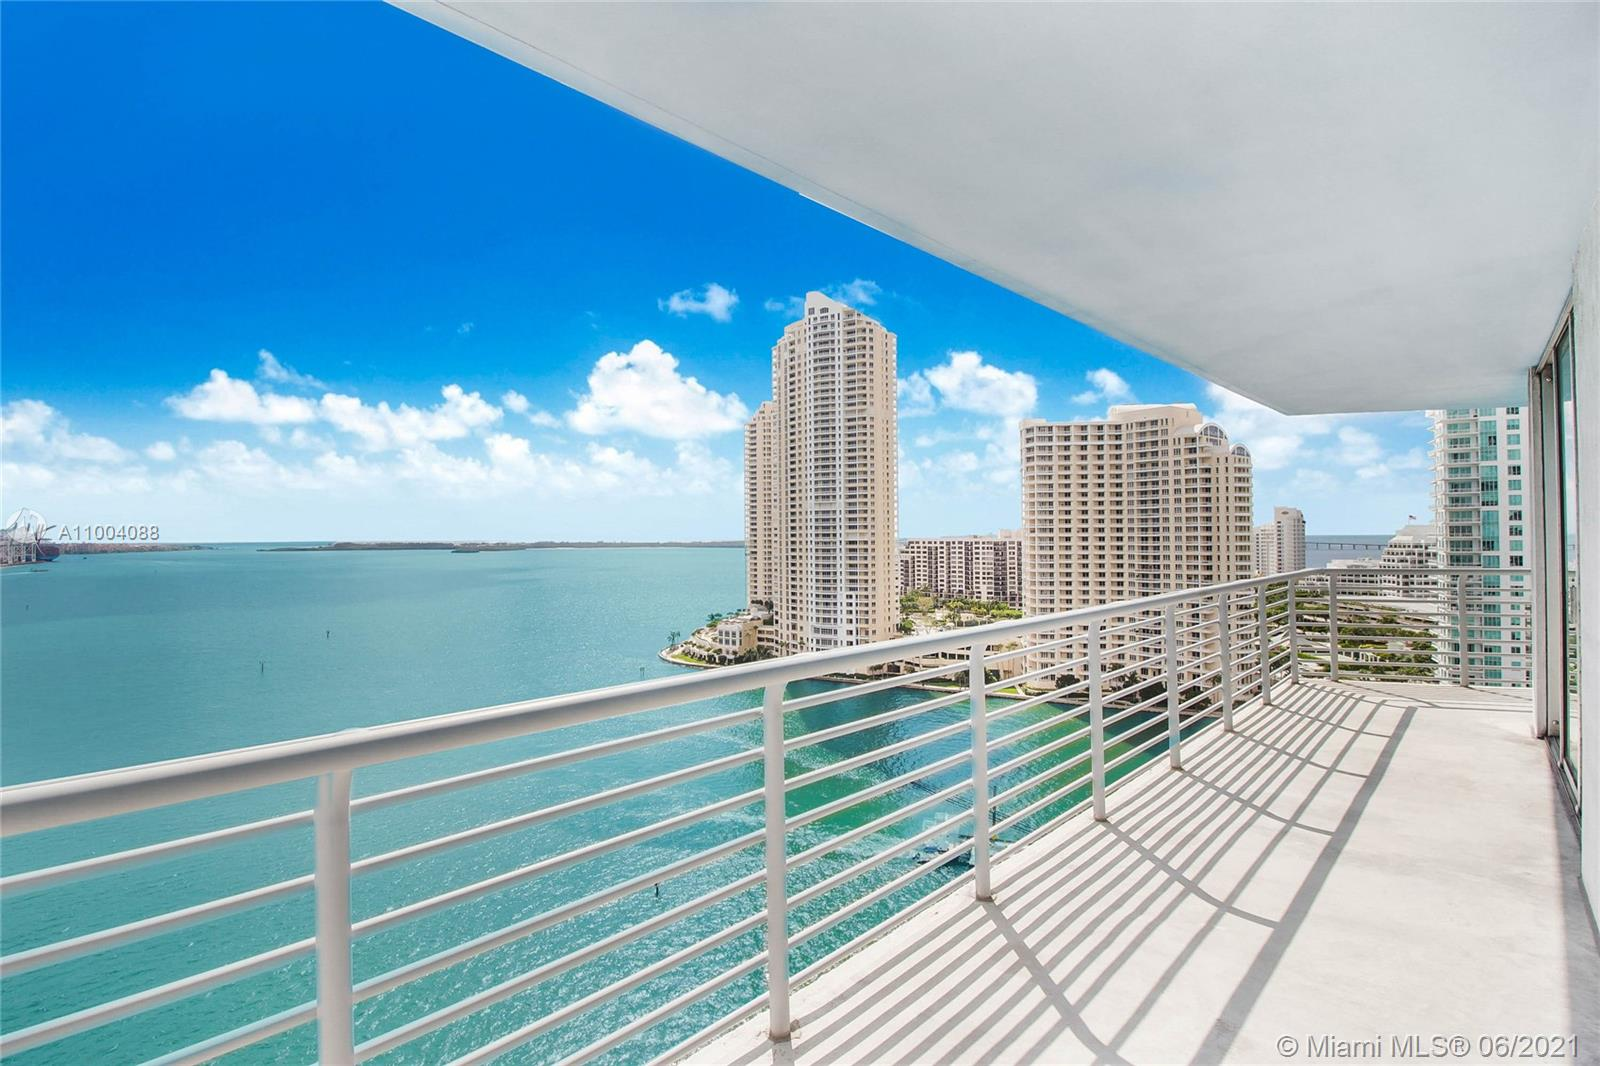 Most beautiful views in Miami! Approx.1800 square feet of Luxury Water front view from every room! 09-Line Bestin Building. Huge 3 BR 2 Bath Pristine Condition! Enjoy breathtaking panoramic views of Biscayne Bay, Port of Miami and the Miami Beach skyline from every window. The building offers resort-style amenities which include 24-hour security, excellent concierge and valet services, a recently renovated pool and state of the art gym. Minutes away from the finest restaurants and downtown hotspots including a new Whole Foods market. Wake up each morning to a magical sunrise, or relax on your spacious terrace under the evening sky. Live the Miami lifestyle in permanent vacation mode.